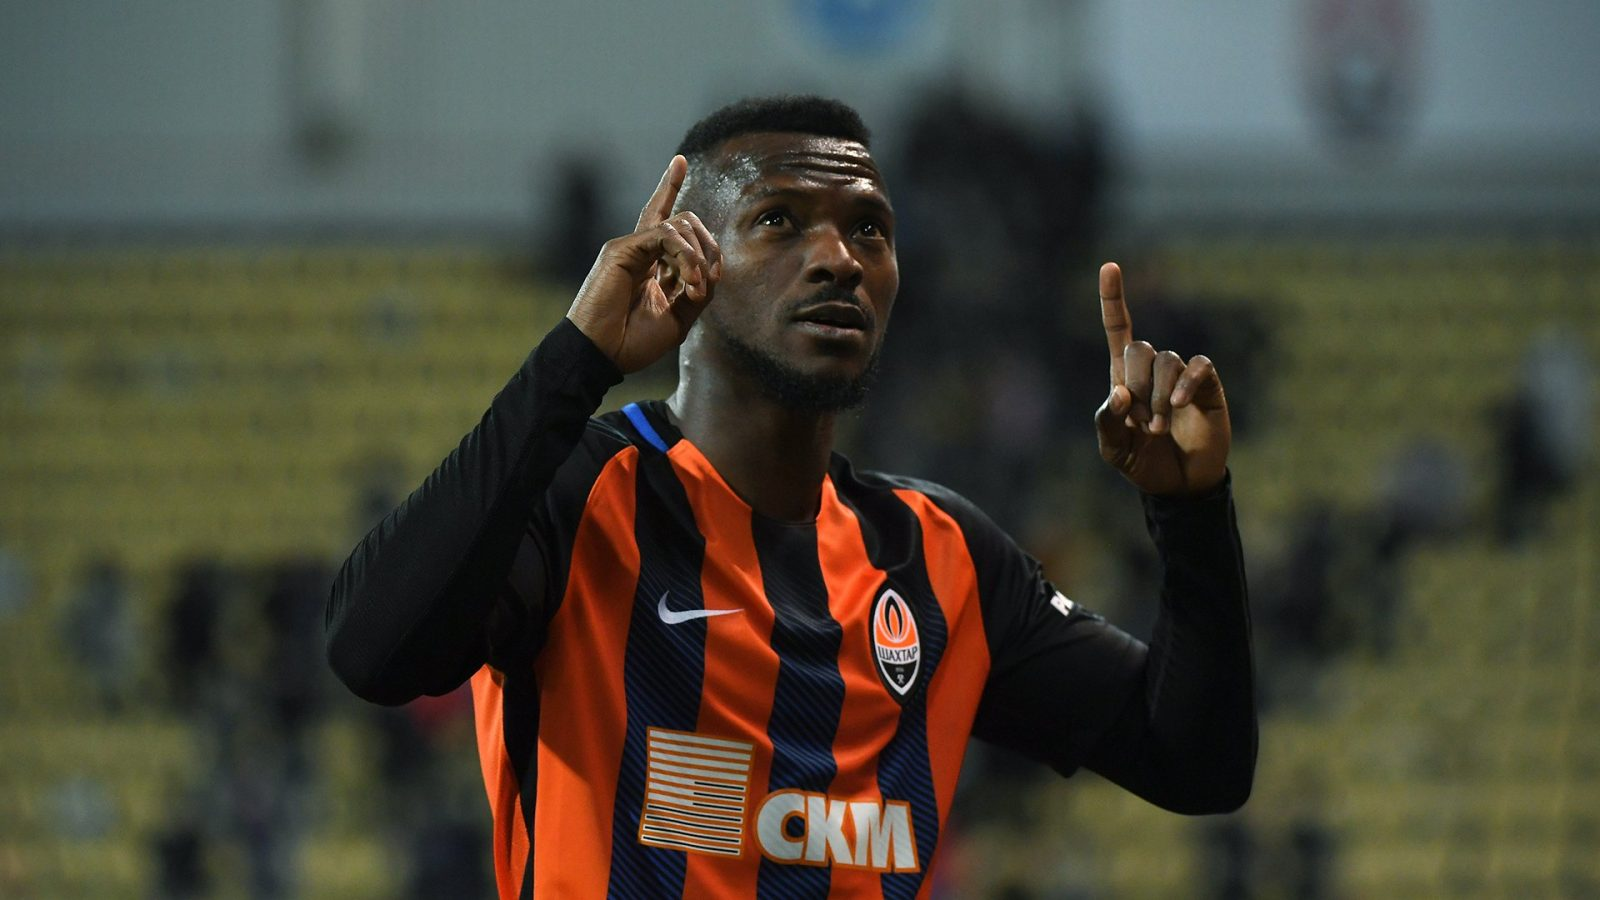 UCL: Kayode Eyes First UCL Goal With Shakhtar Vs Lyon